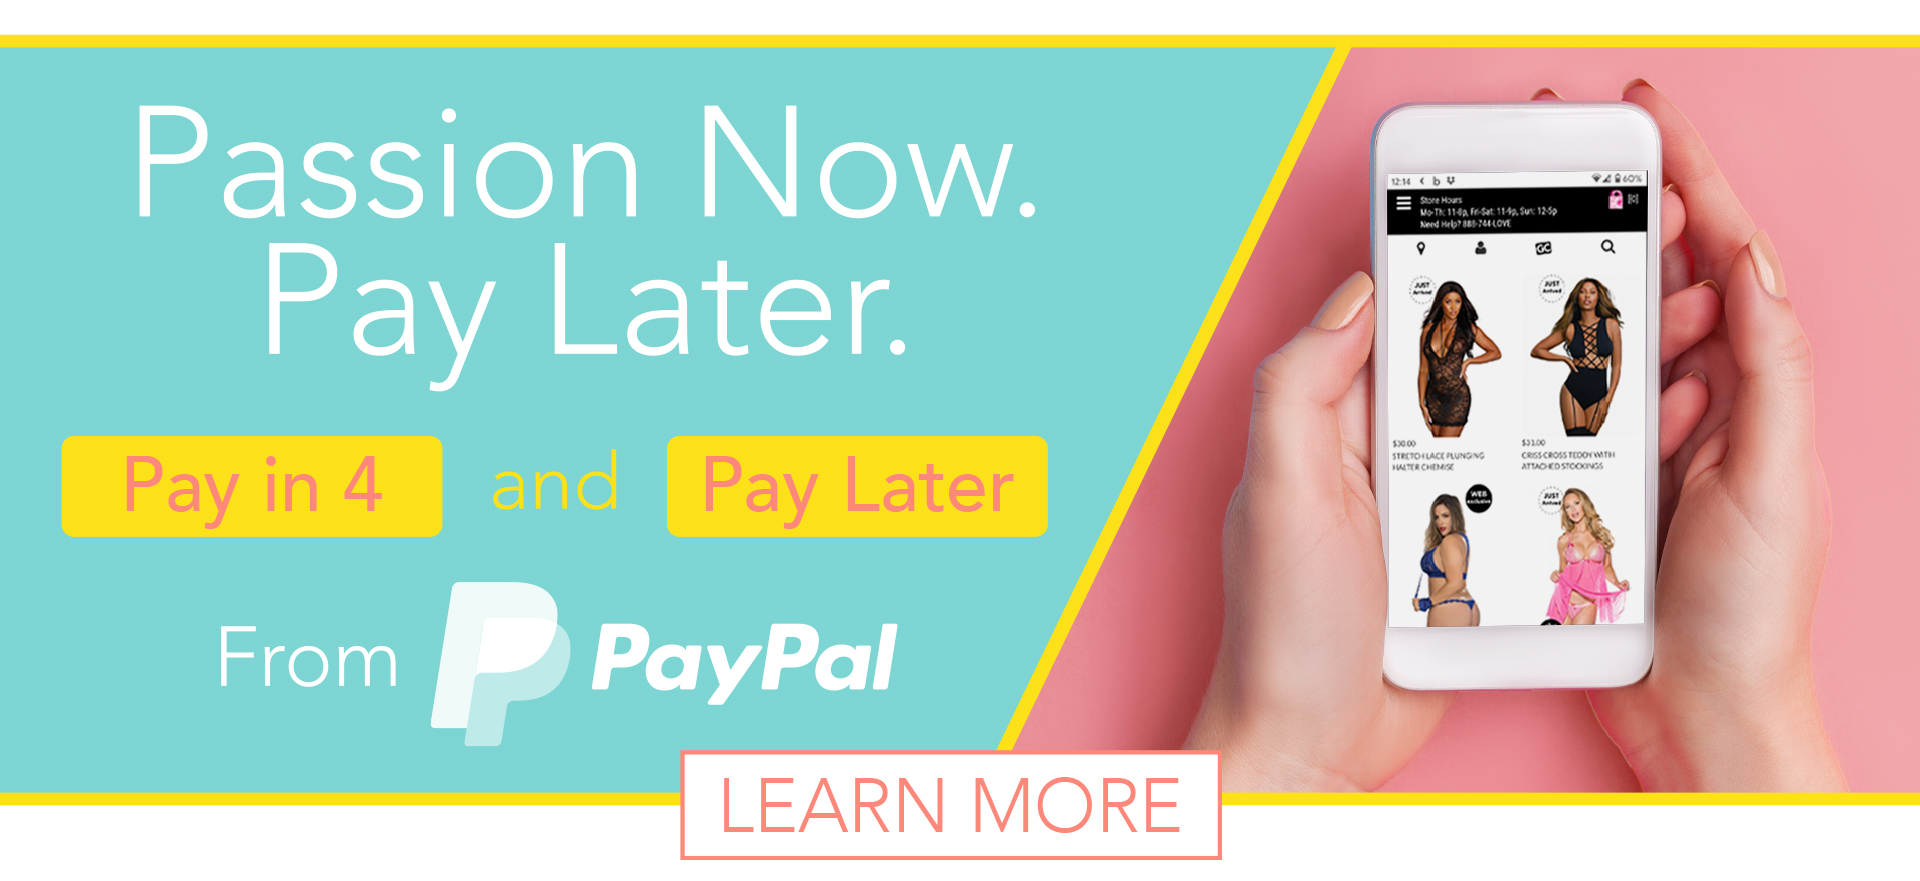 Passion Now. Pay Later. - Pay in 4 & Pay Later - From Paypal - Learn More